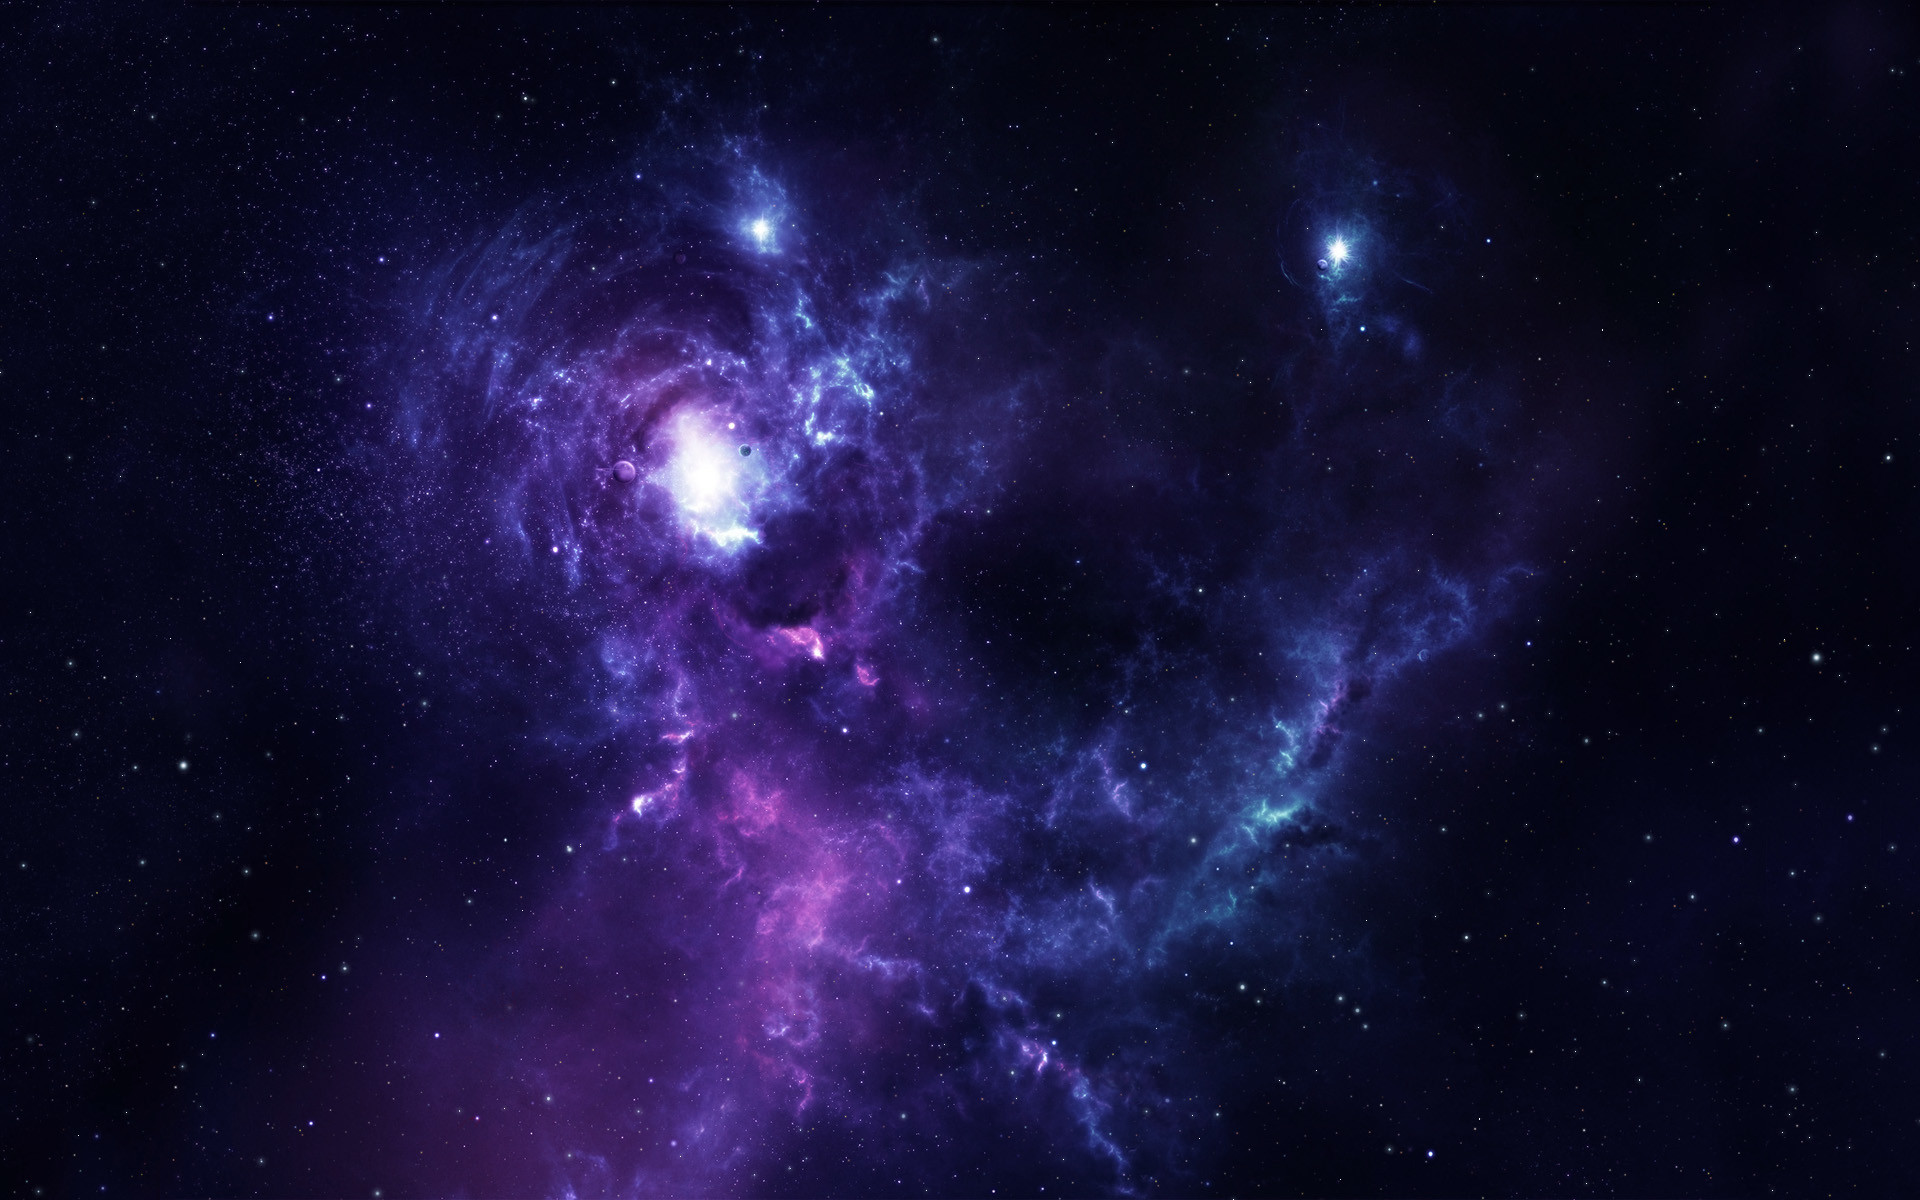 Download Space Nebula Wallpaper High Quality Resolution #20n px  461.03 KB